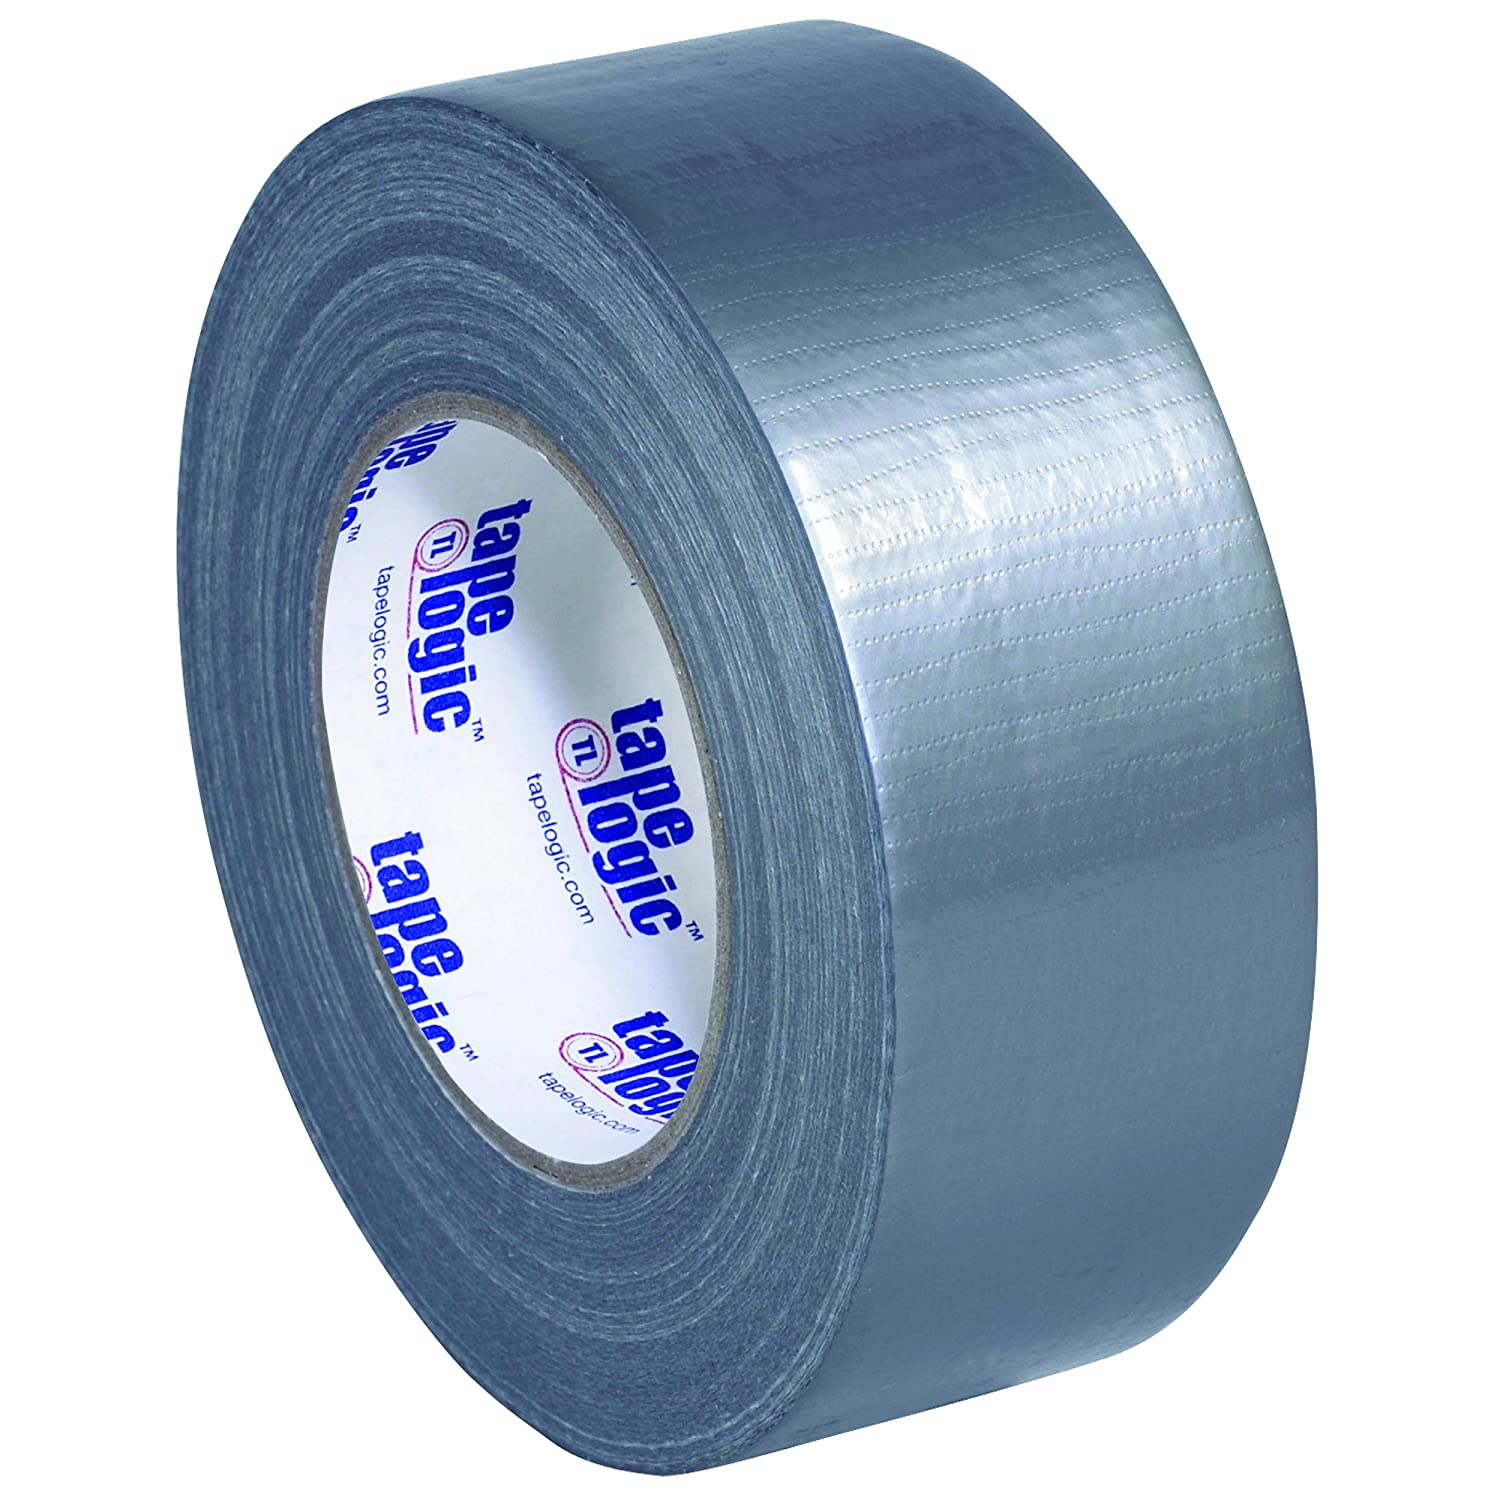 25% OFF Tape Logic 3 Pack Multipurpose Silver Duct 2 Over item handling Y x 60 Inch